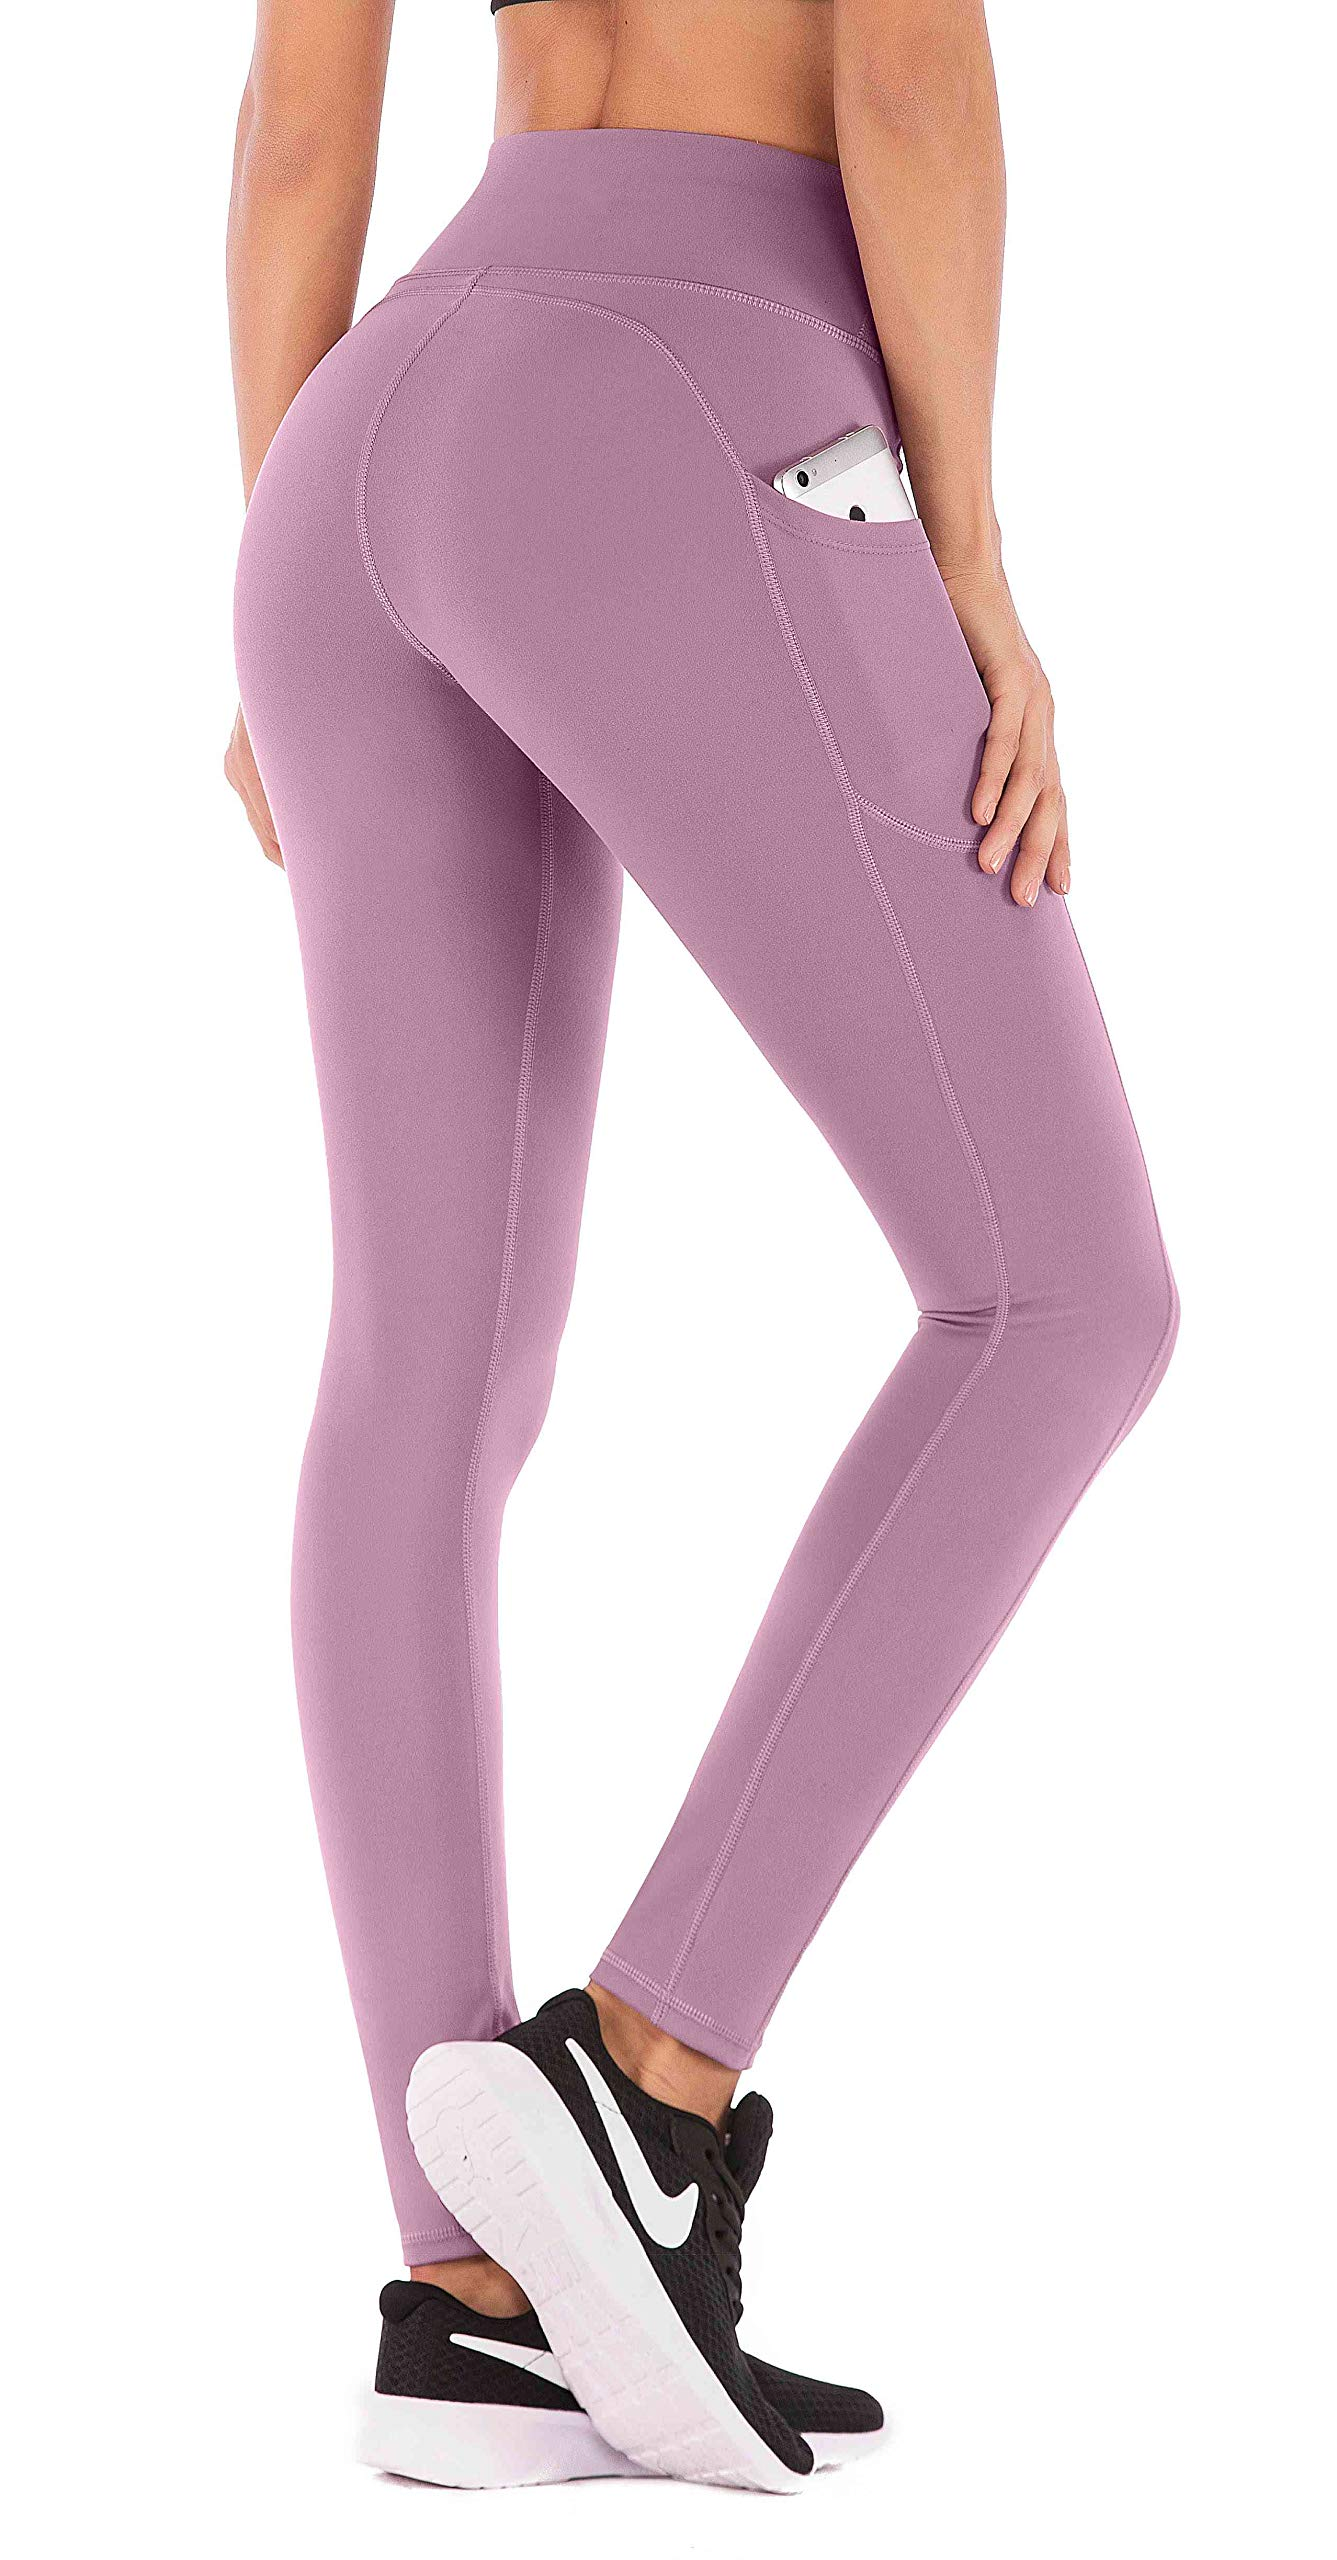 IUGA High Waist Yoga Pants with Pockets, Tummy Control, Workout Pants for Women 4 Way Stretch Yoga Leggings with Pockets (Begonia Pink, X-Small) by IUGA